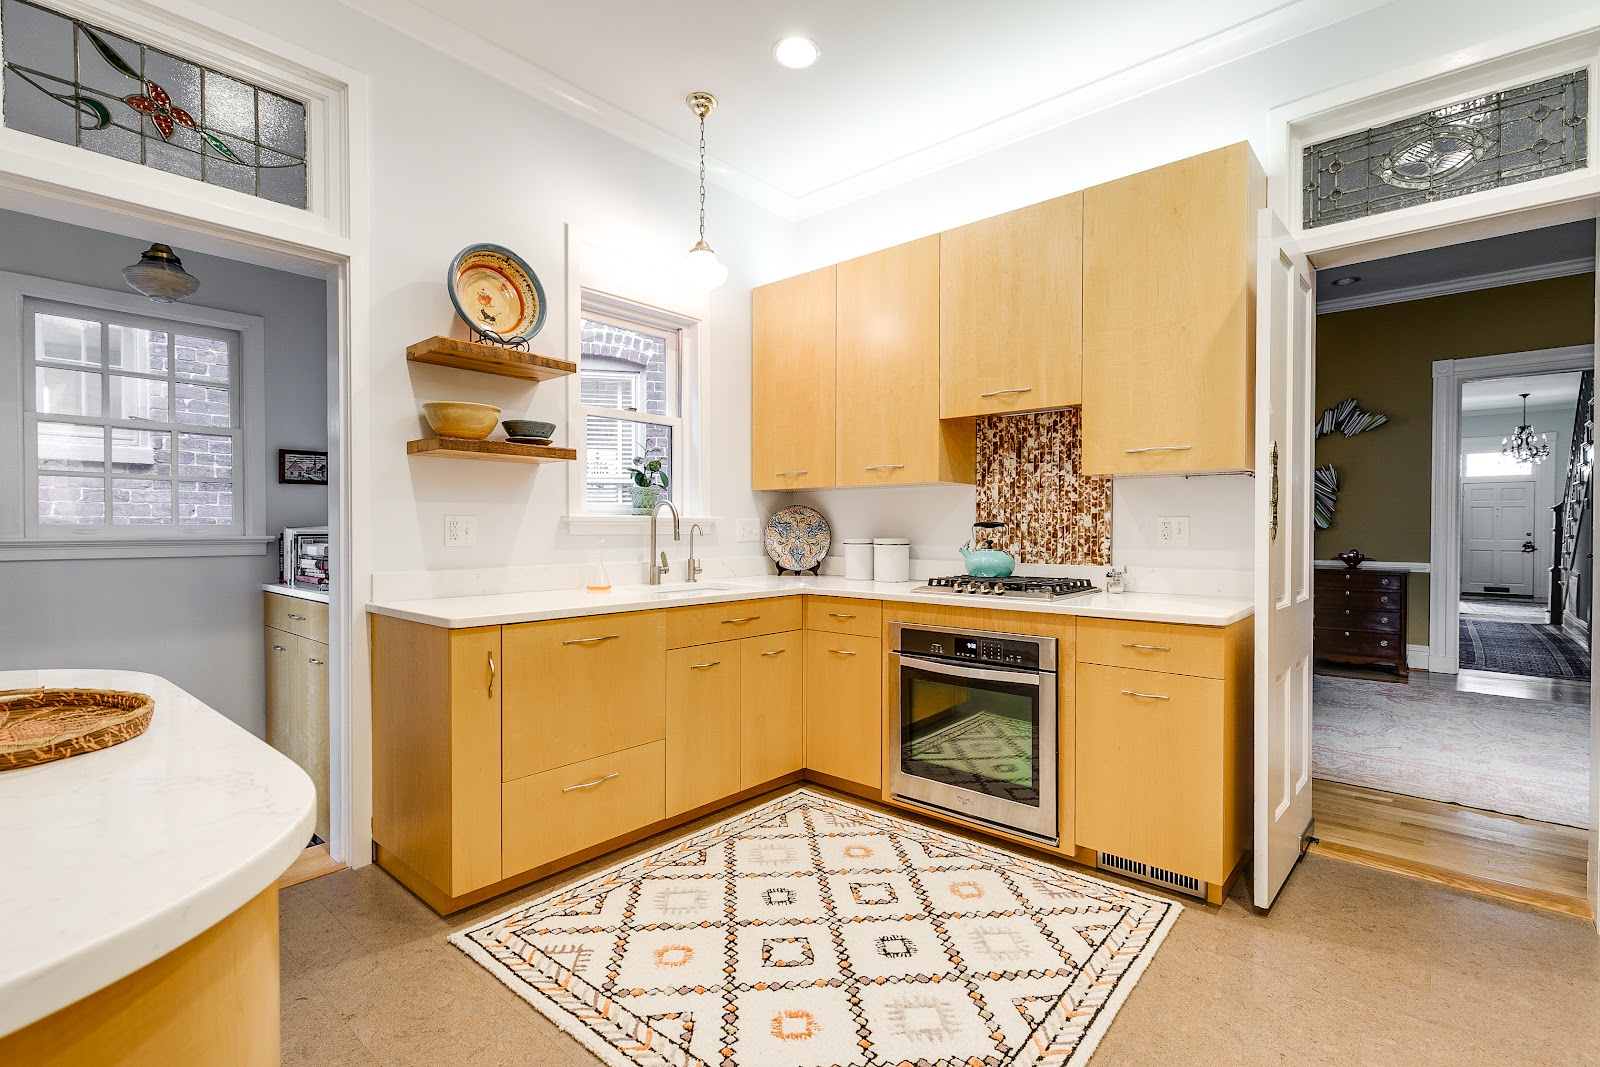 blog kitchen remodel richmond va One of our greatest challenges in working with the historic Richmond homes we love is to help transform these kitchens for modern homeowners